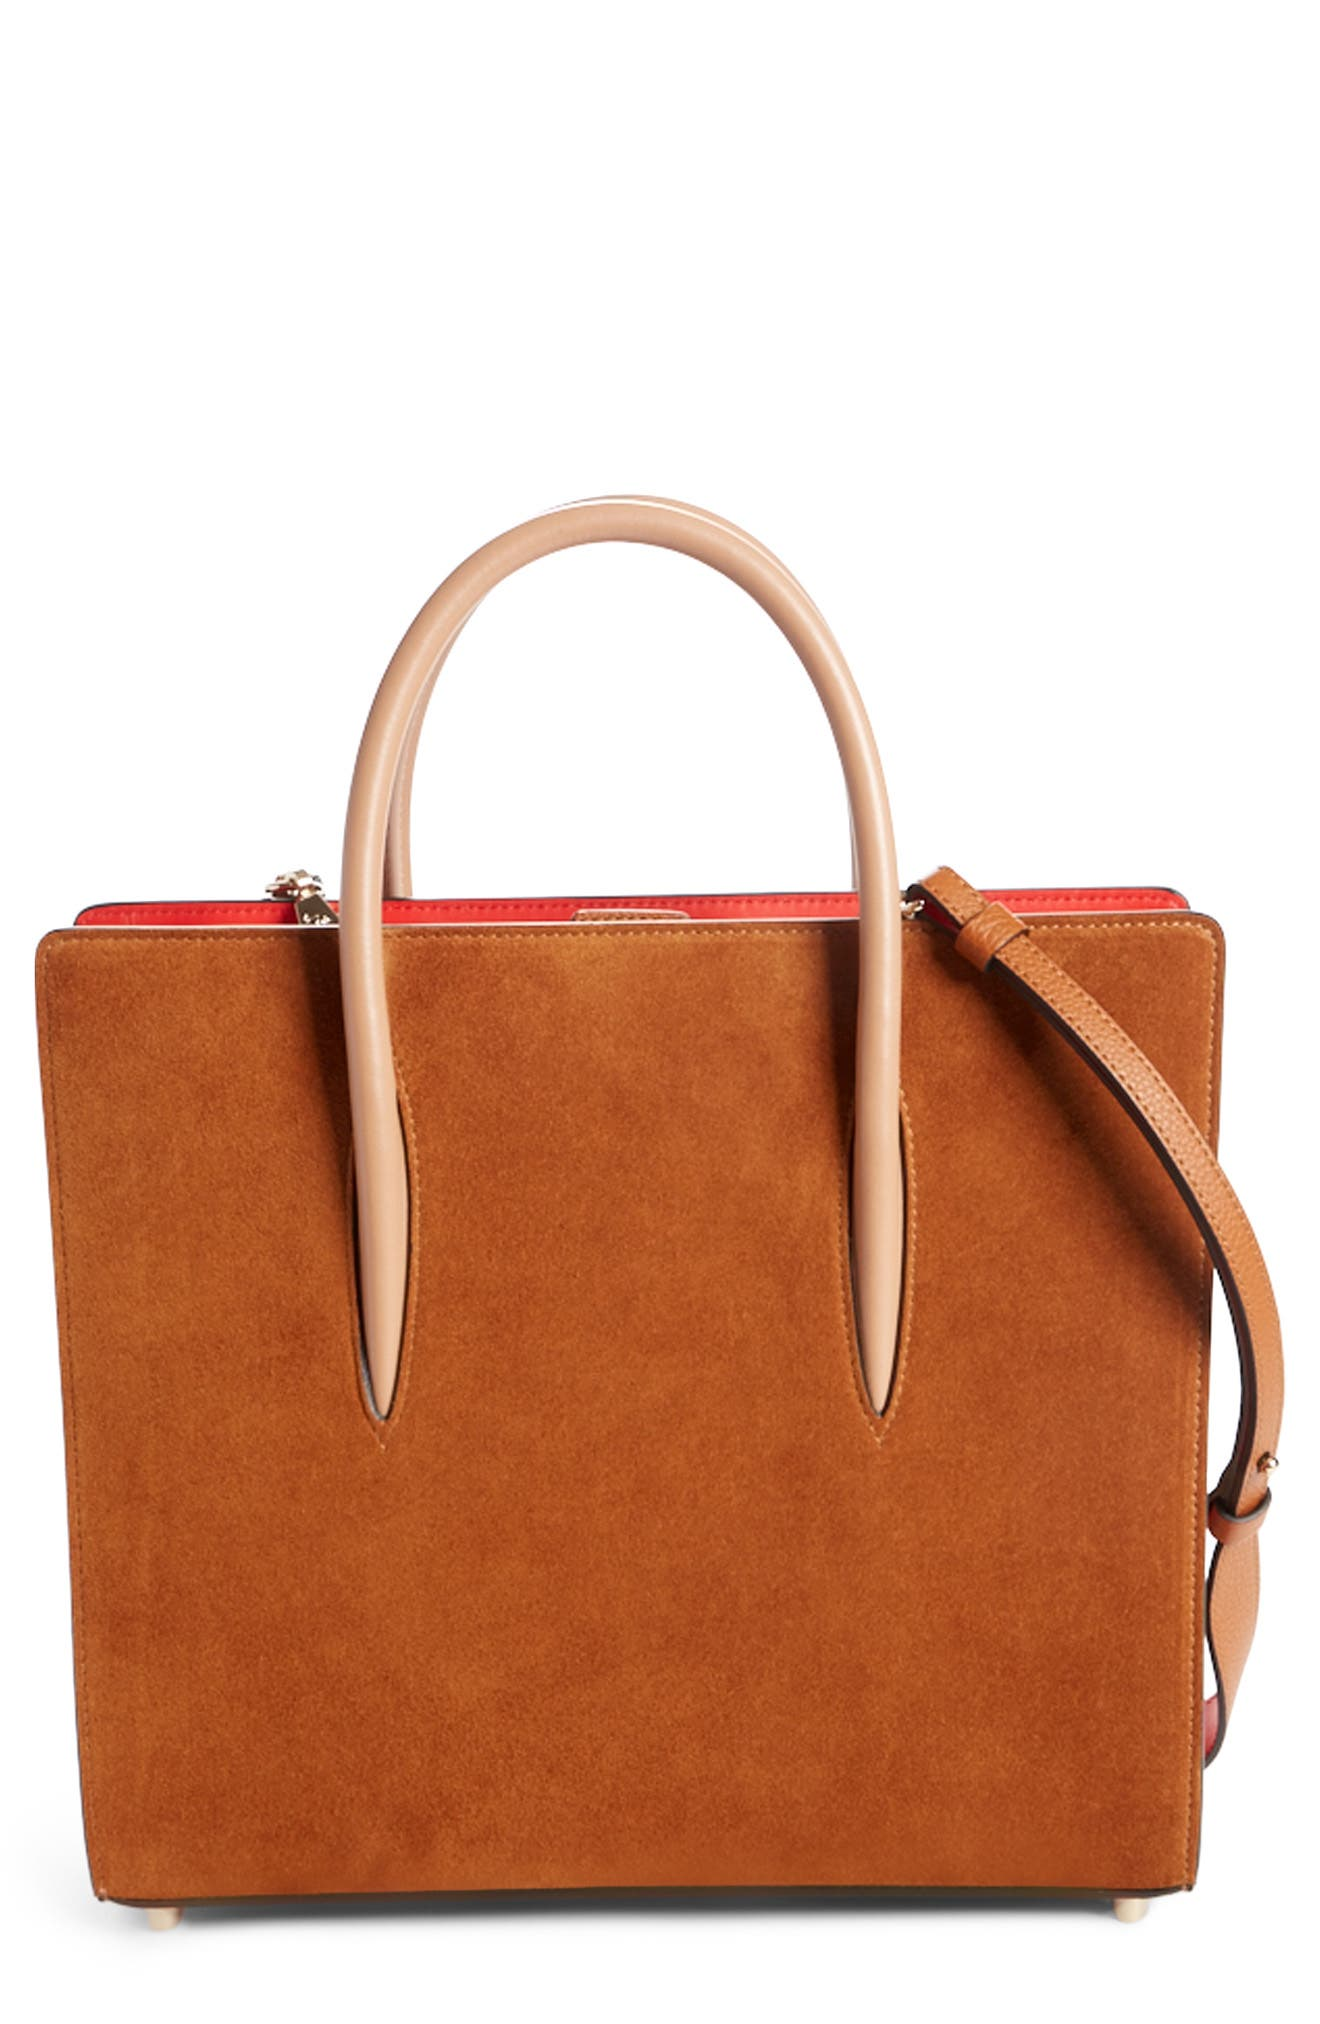 Medium Paloma Loubiwoodstock V Suede & Leather Tote,                             Main thumbnail 1, color,                             Cannelle/ Cannelle